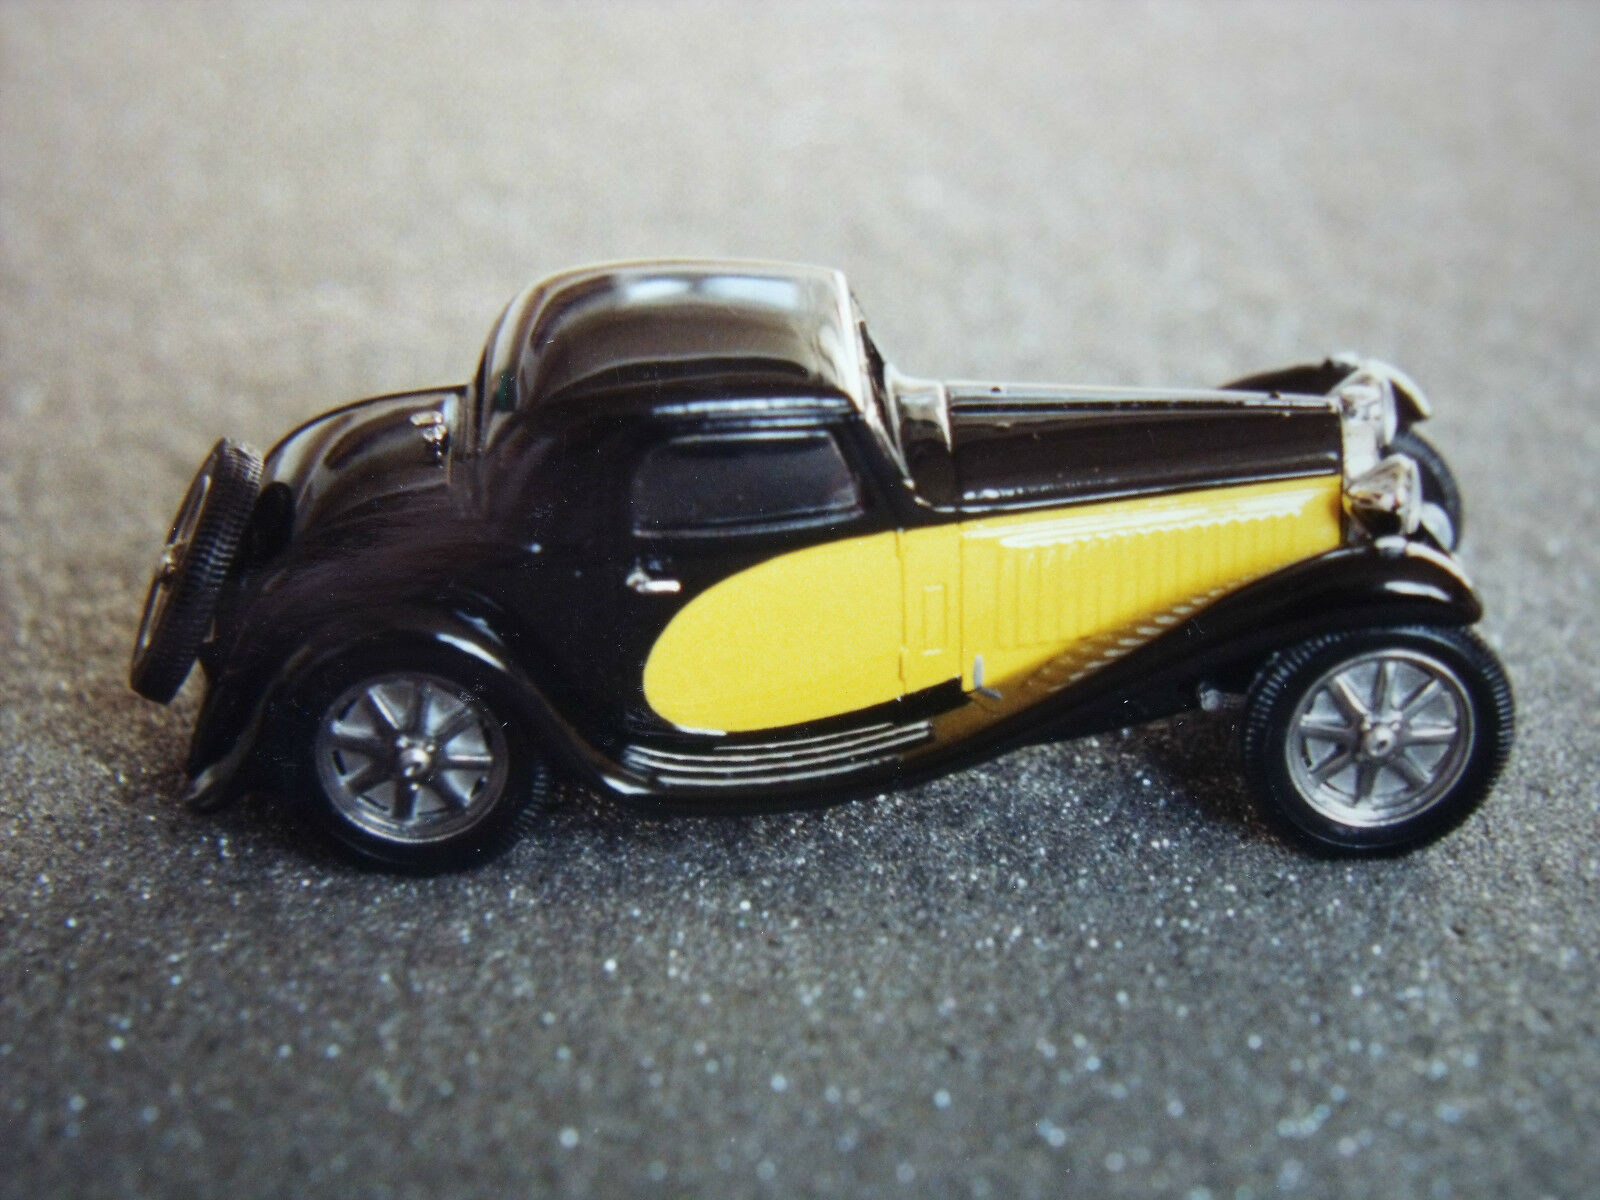 BUGATTI  55  COUPE  1932  JEAN  BUGATTI  VROOM   A  MONTER  UNPAINTED  KIT  1 43